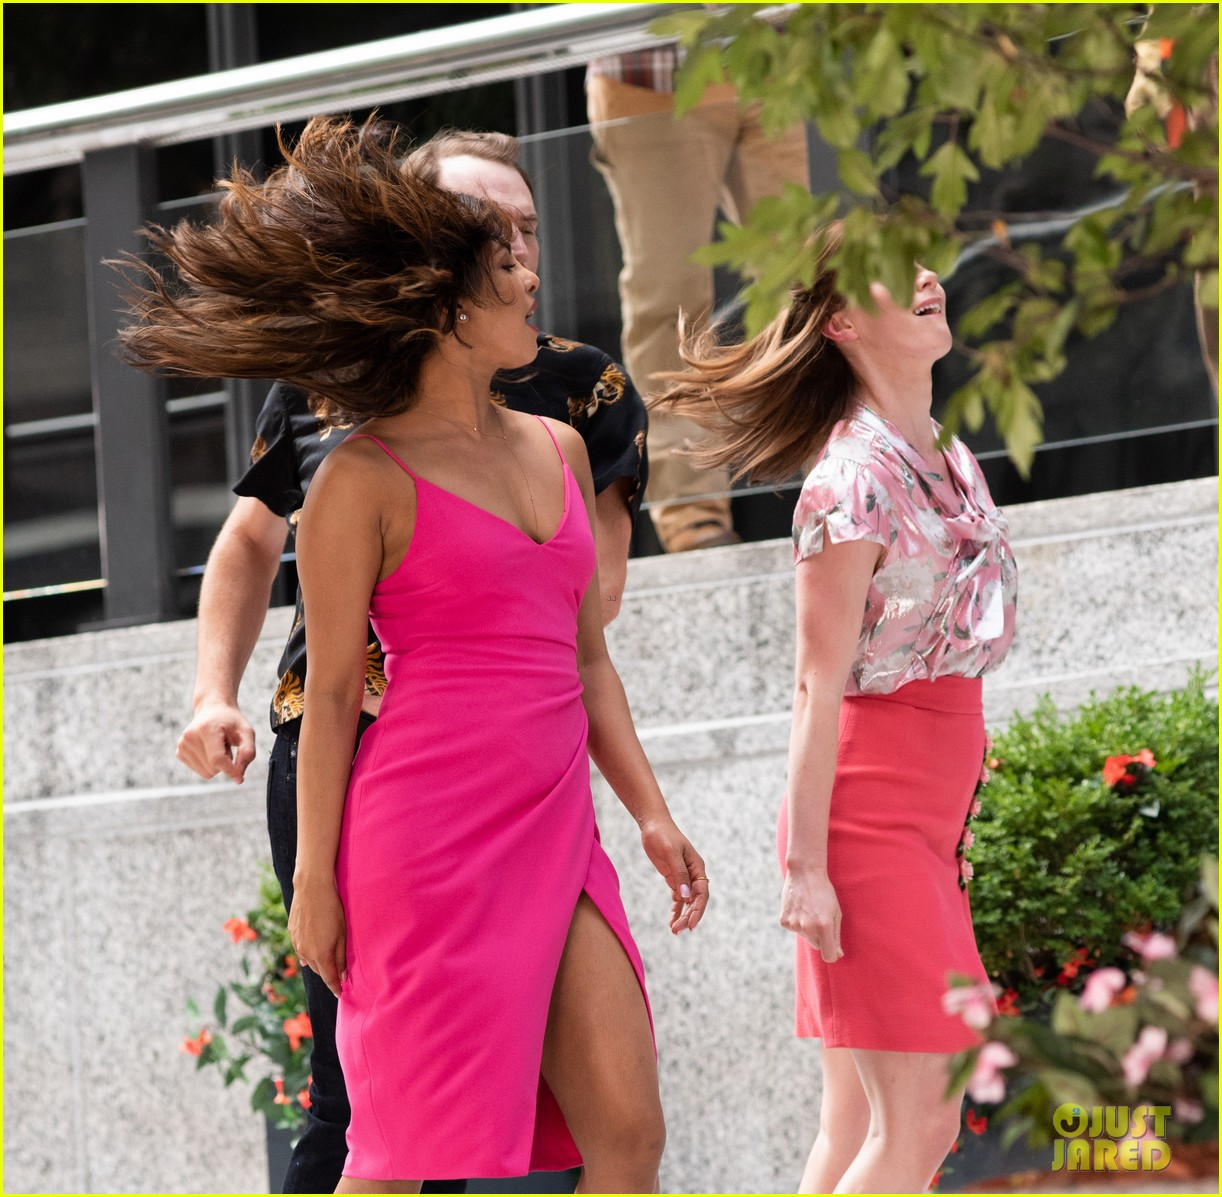 liam hemsworth and priyanka chopra film dancing scene for isnt it romantic 15